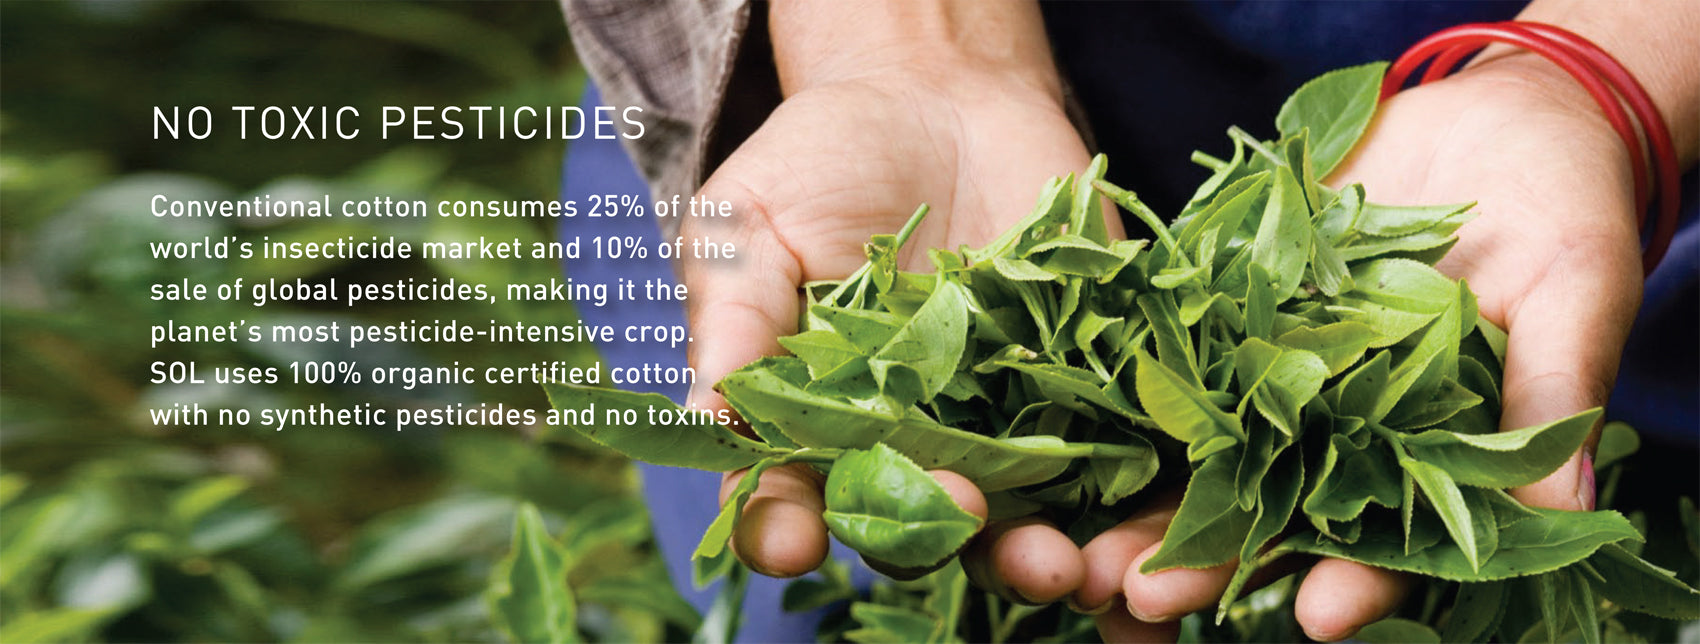 Impact No Toxic Pesticides